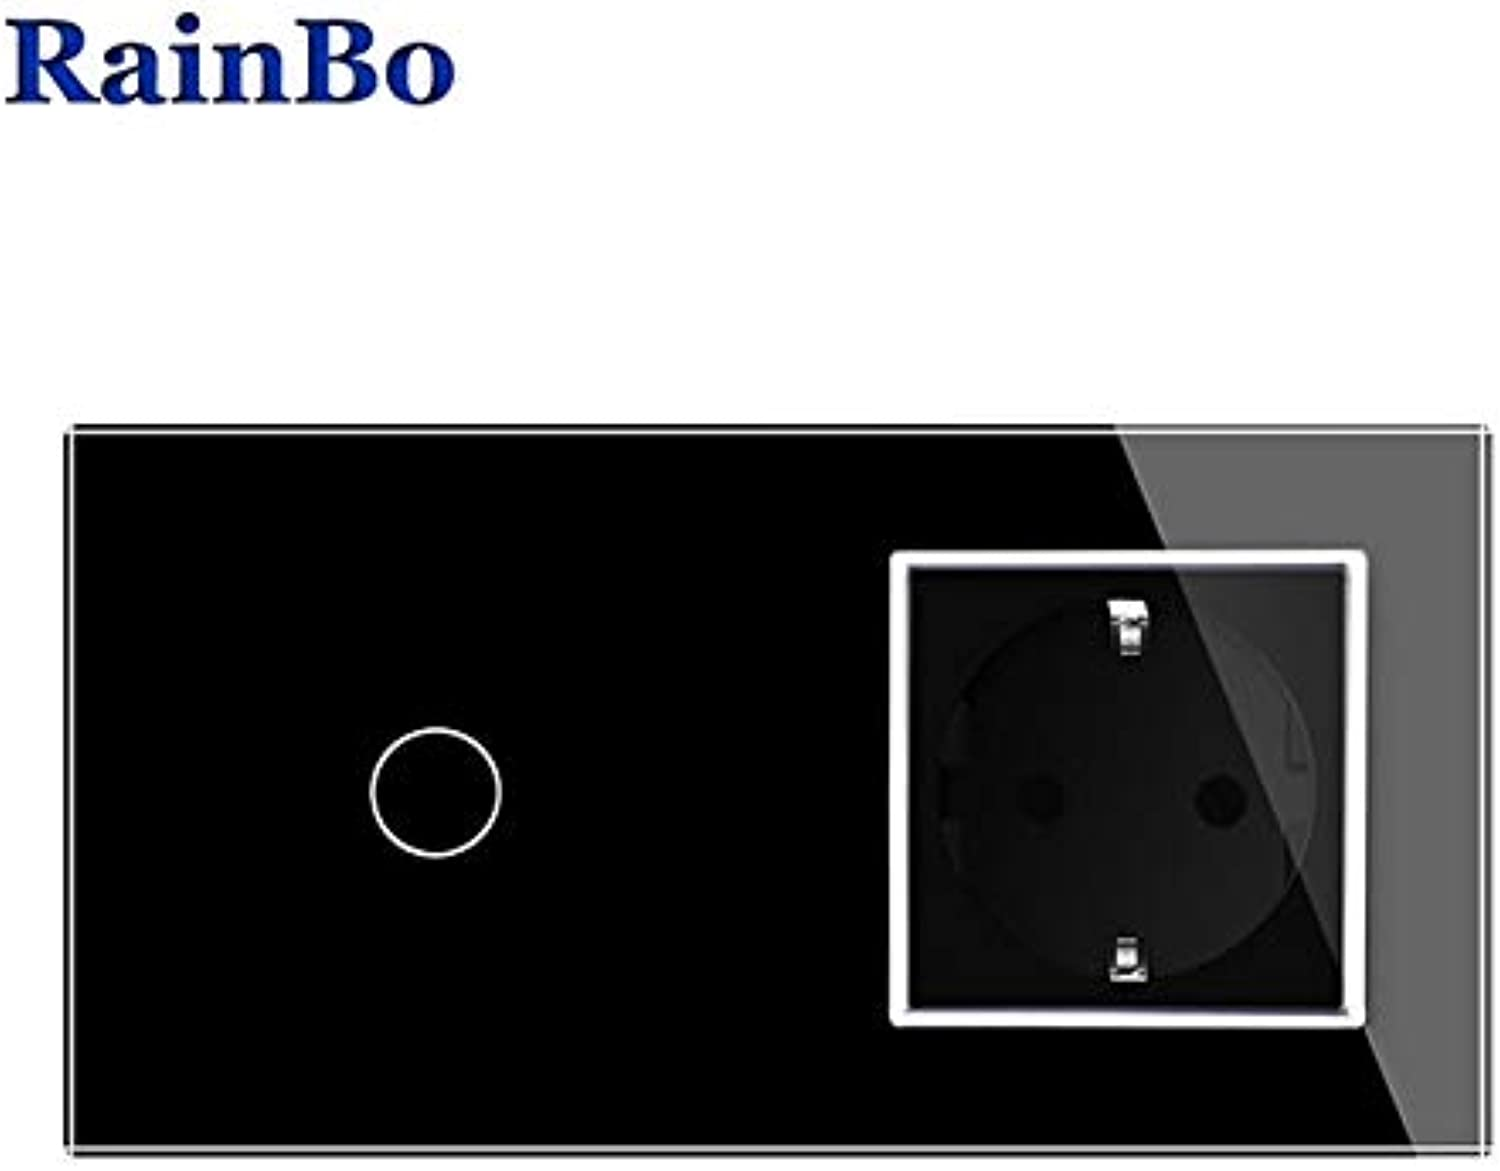 RainBo Brand Luxury Touch Screen Control Tempered Crystal Glass Panel Wall Light Touch Switch Socket Wall Socket A29118ECW B  (color  Black)